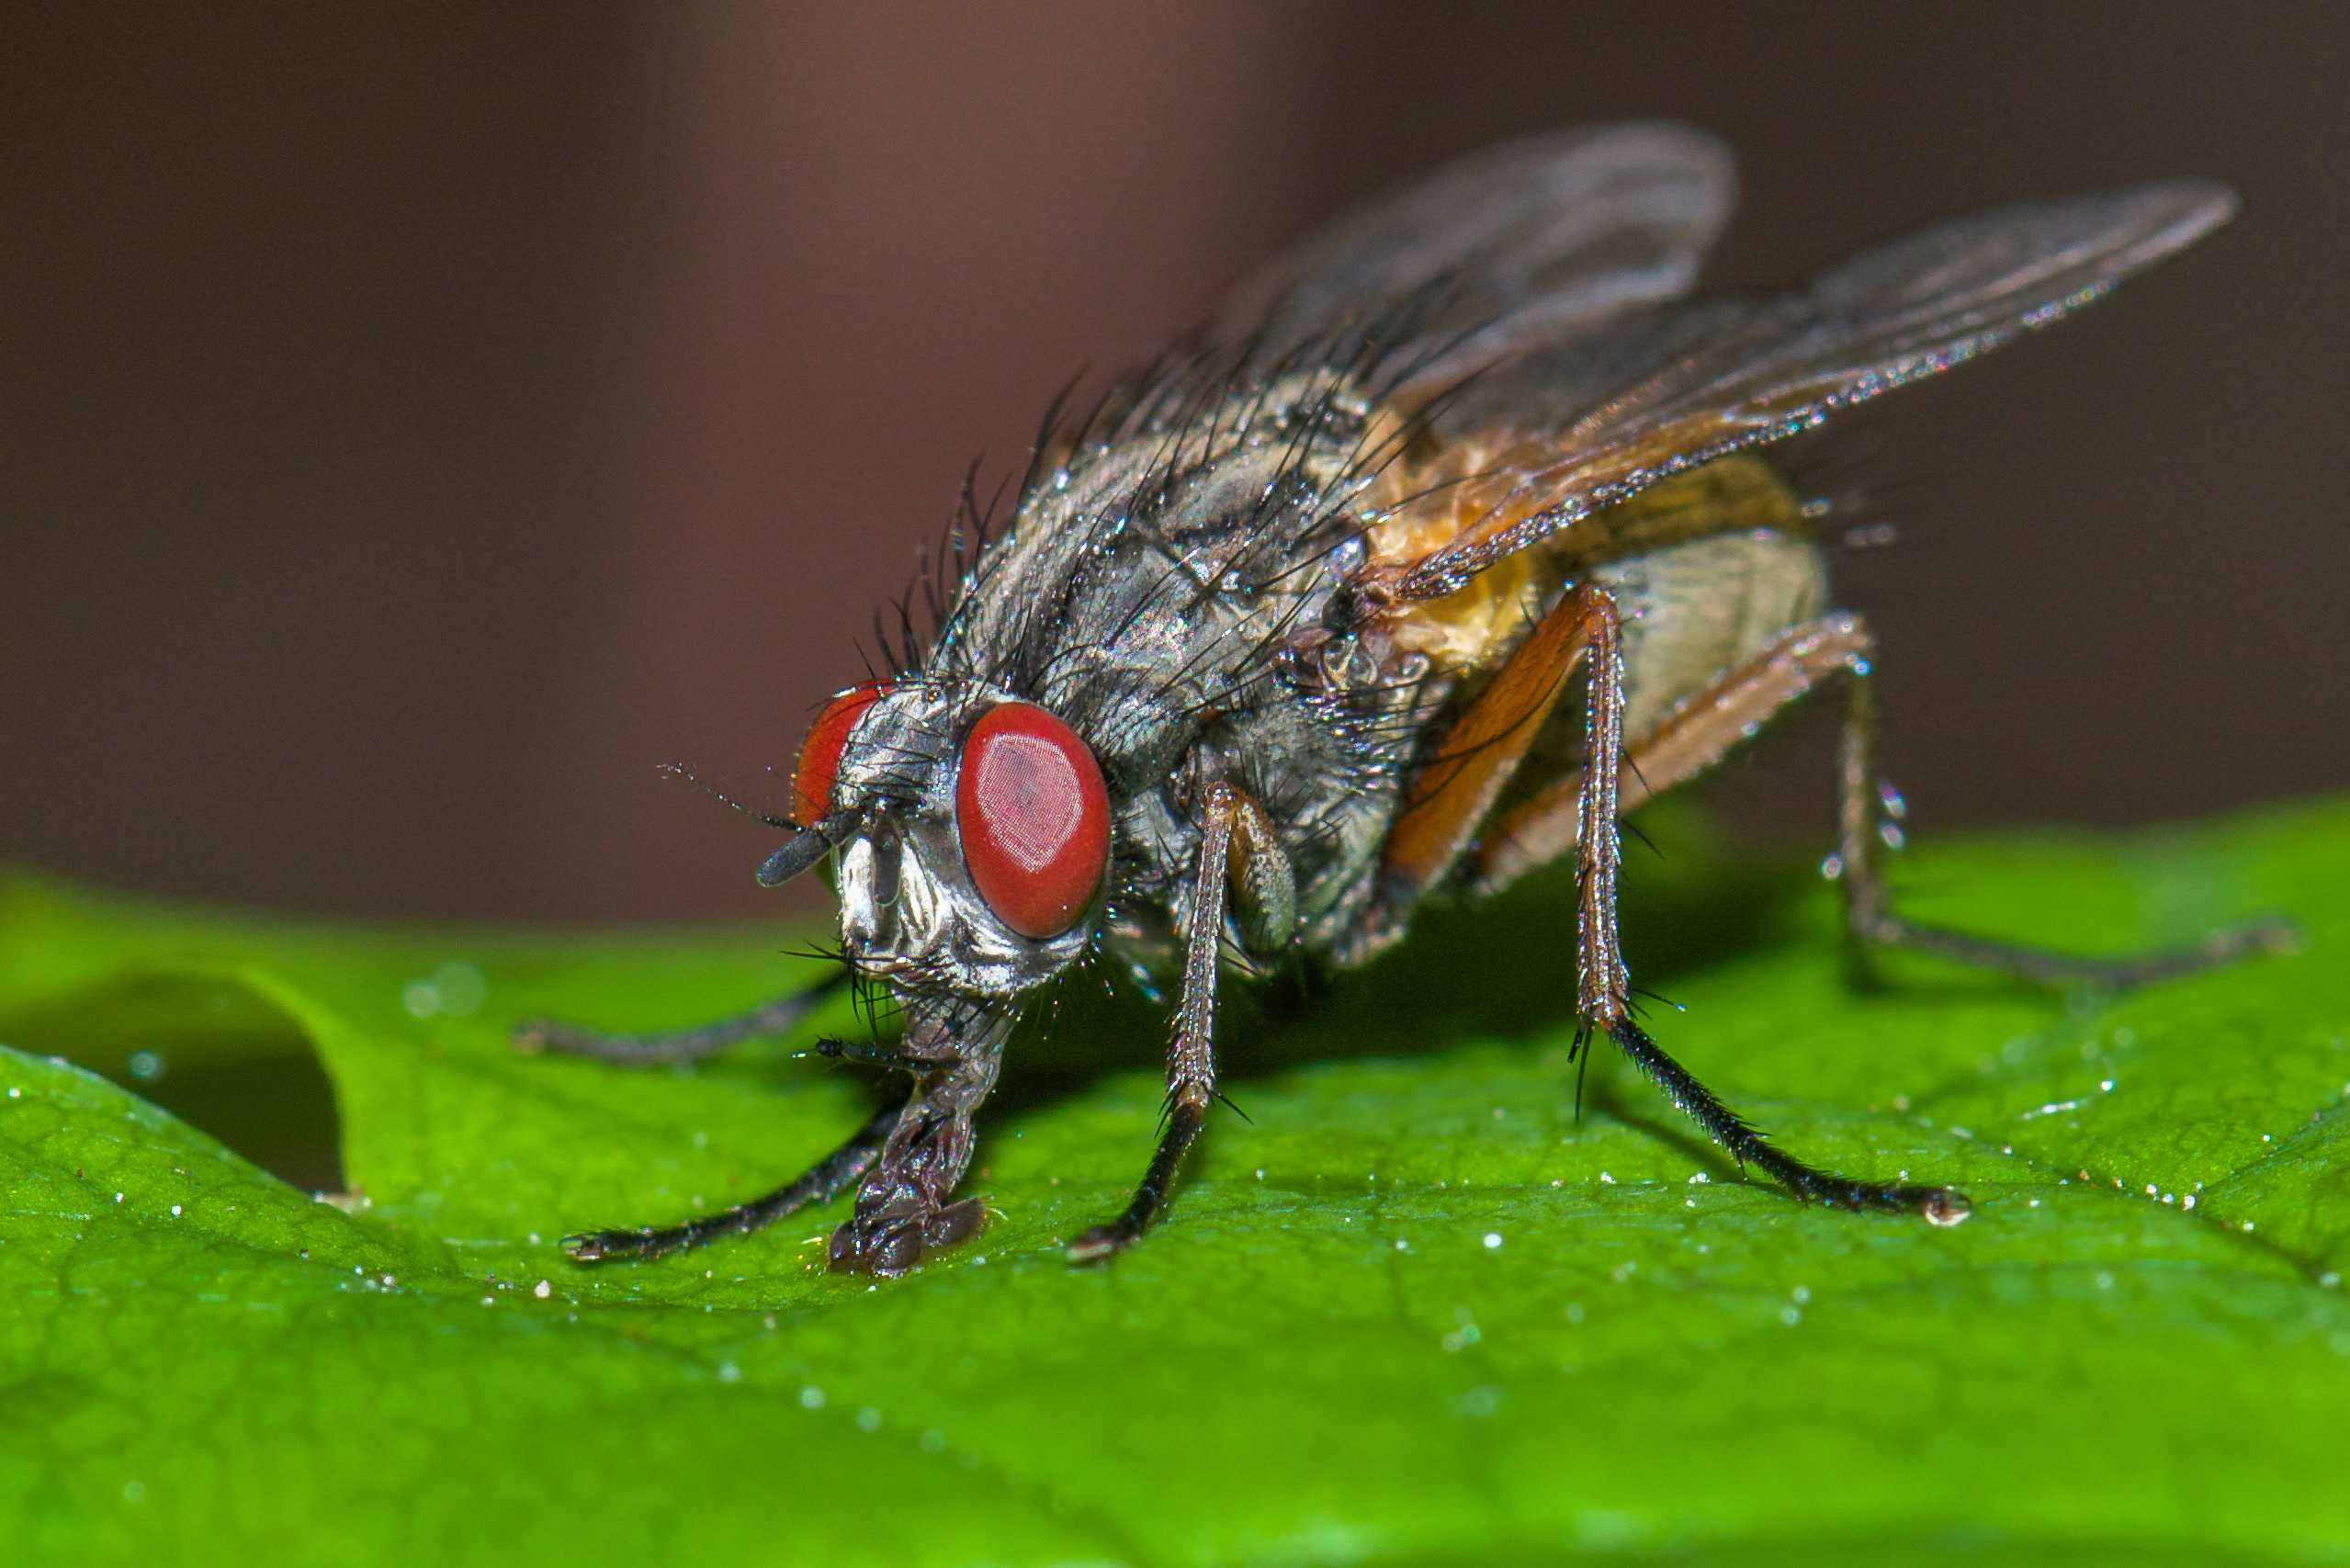 Pest Control Services : Prevent flies from spreading germs with pest control service